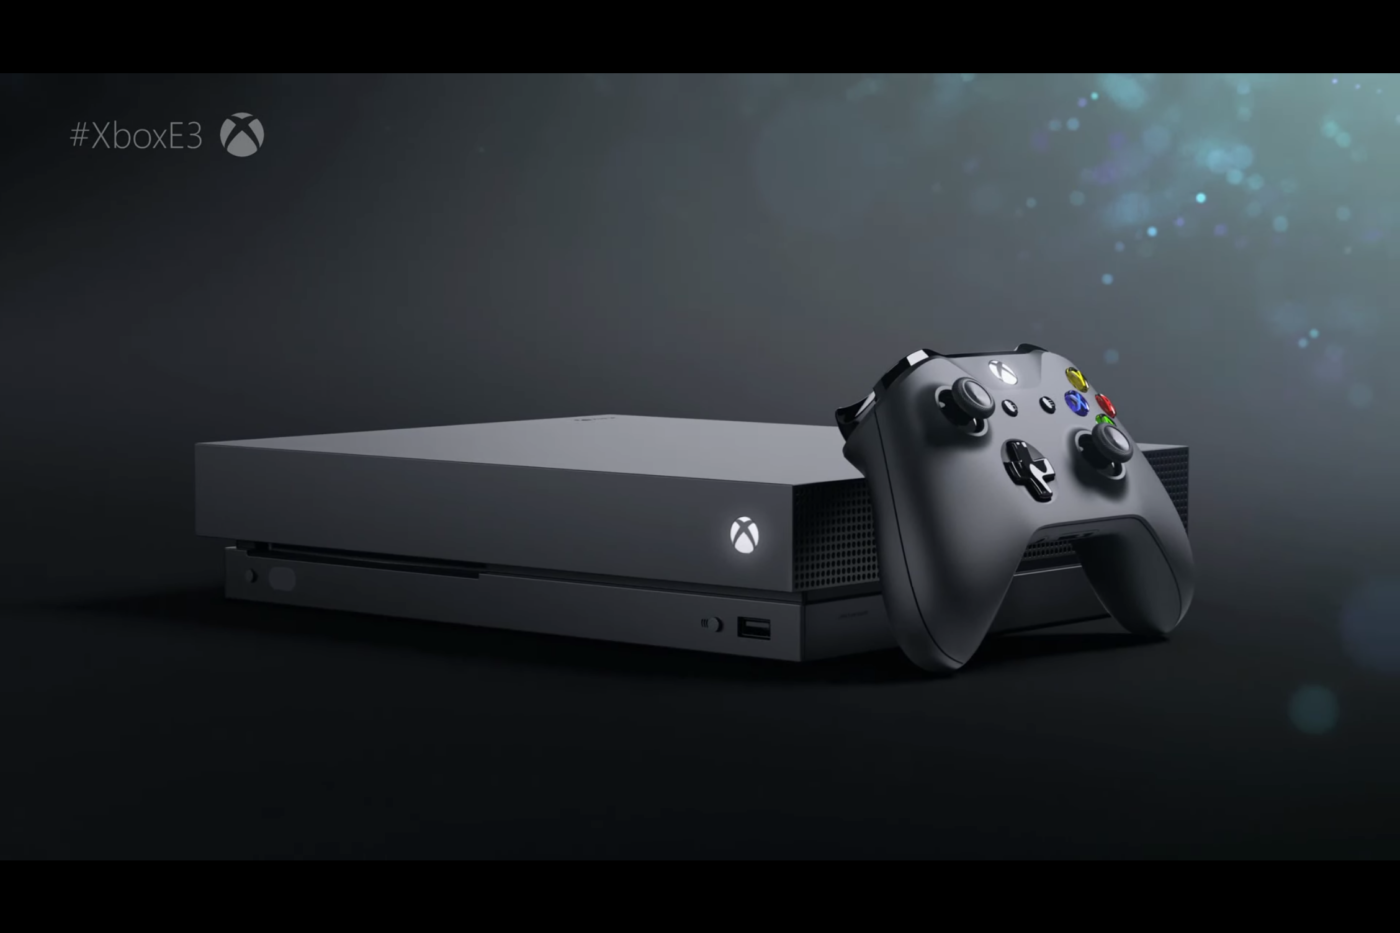 Project Scorpio Is Now Officially Xbox One X, And It's Insanely Tiny 1